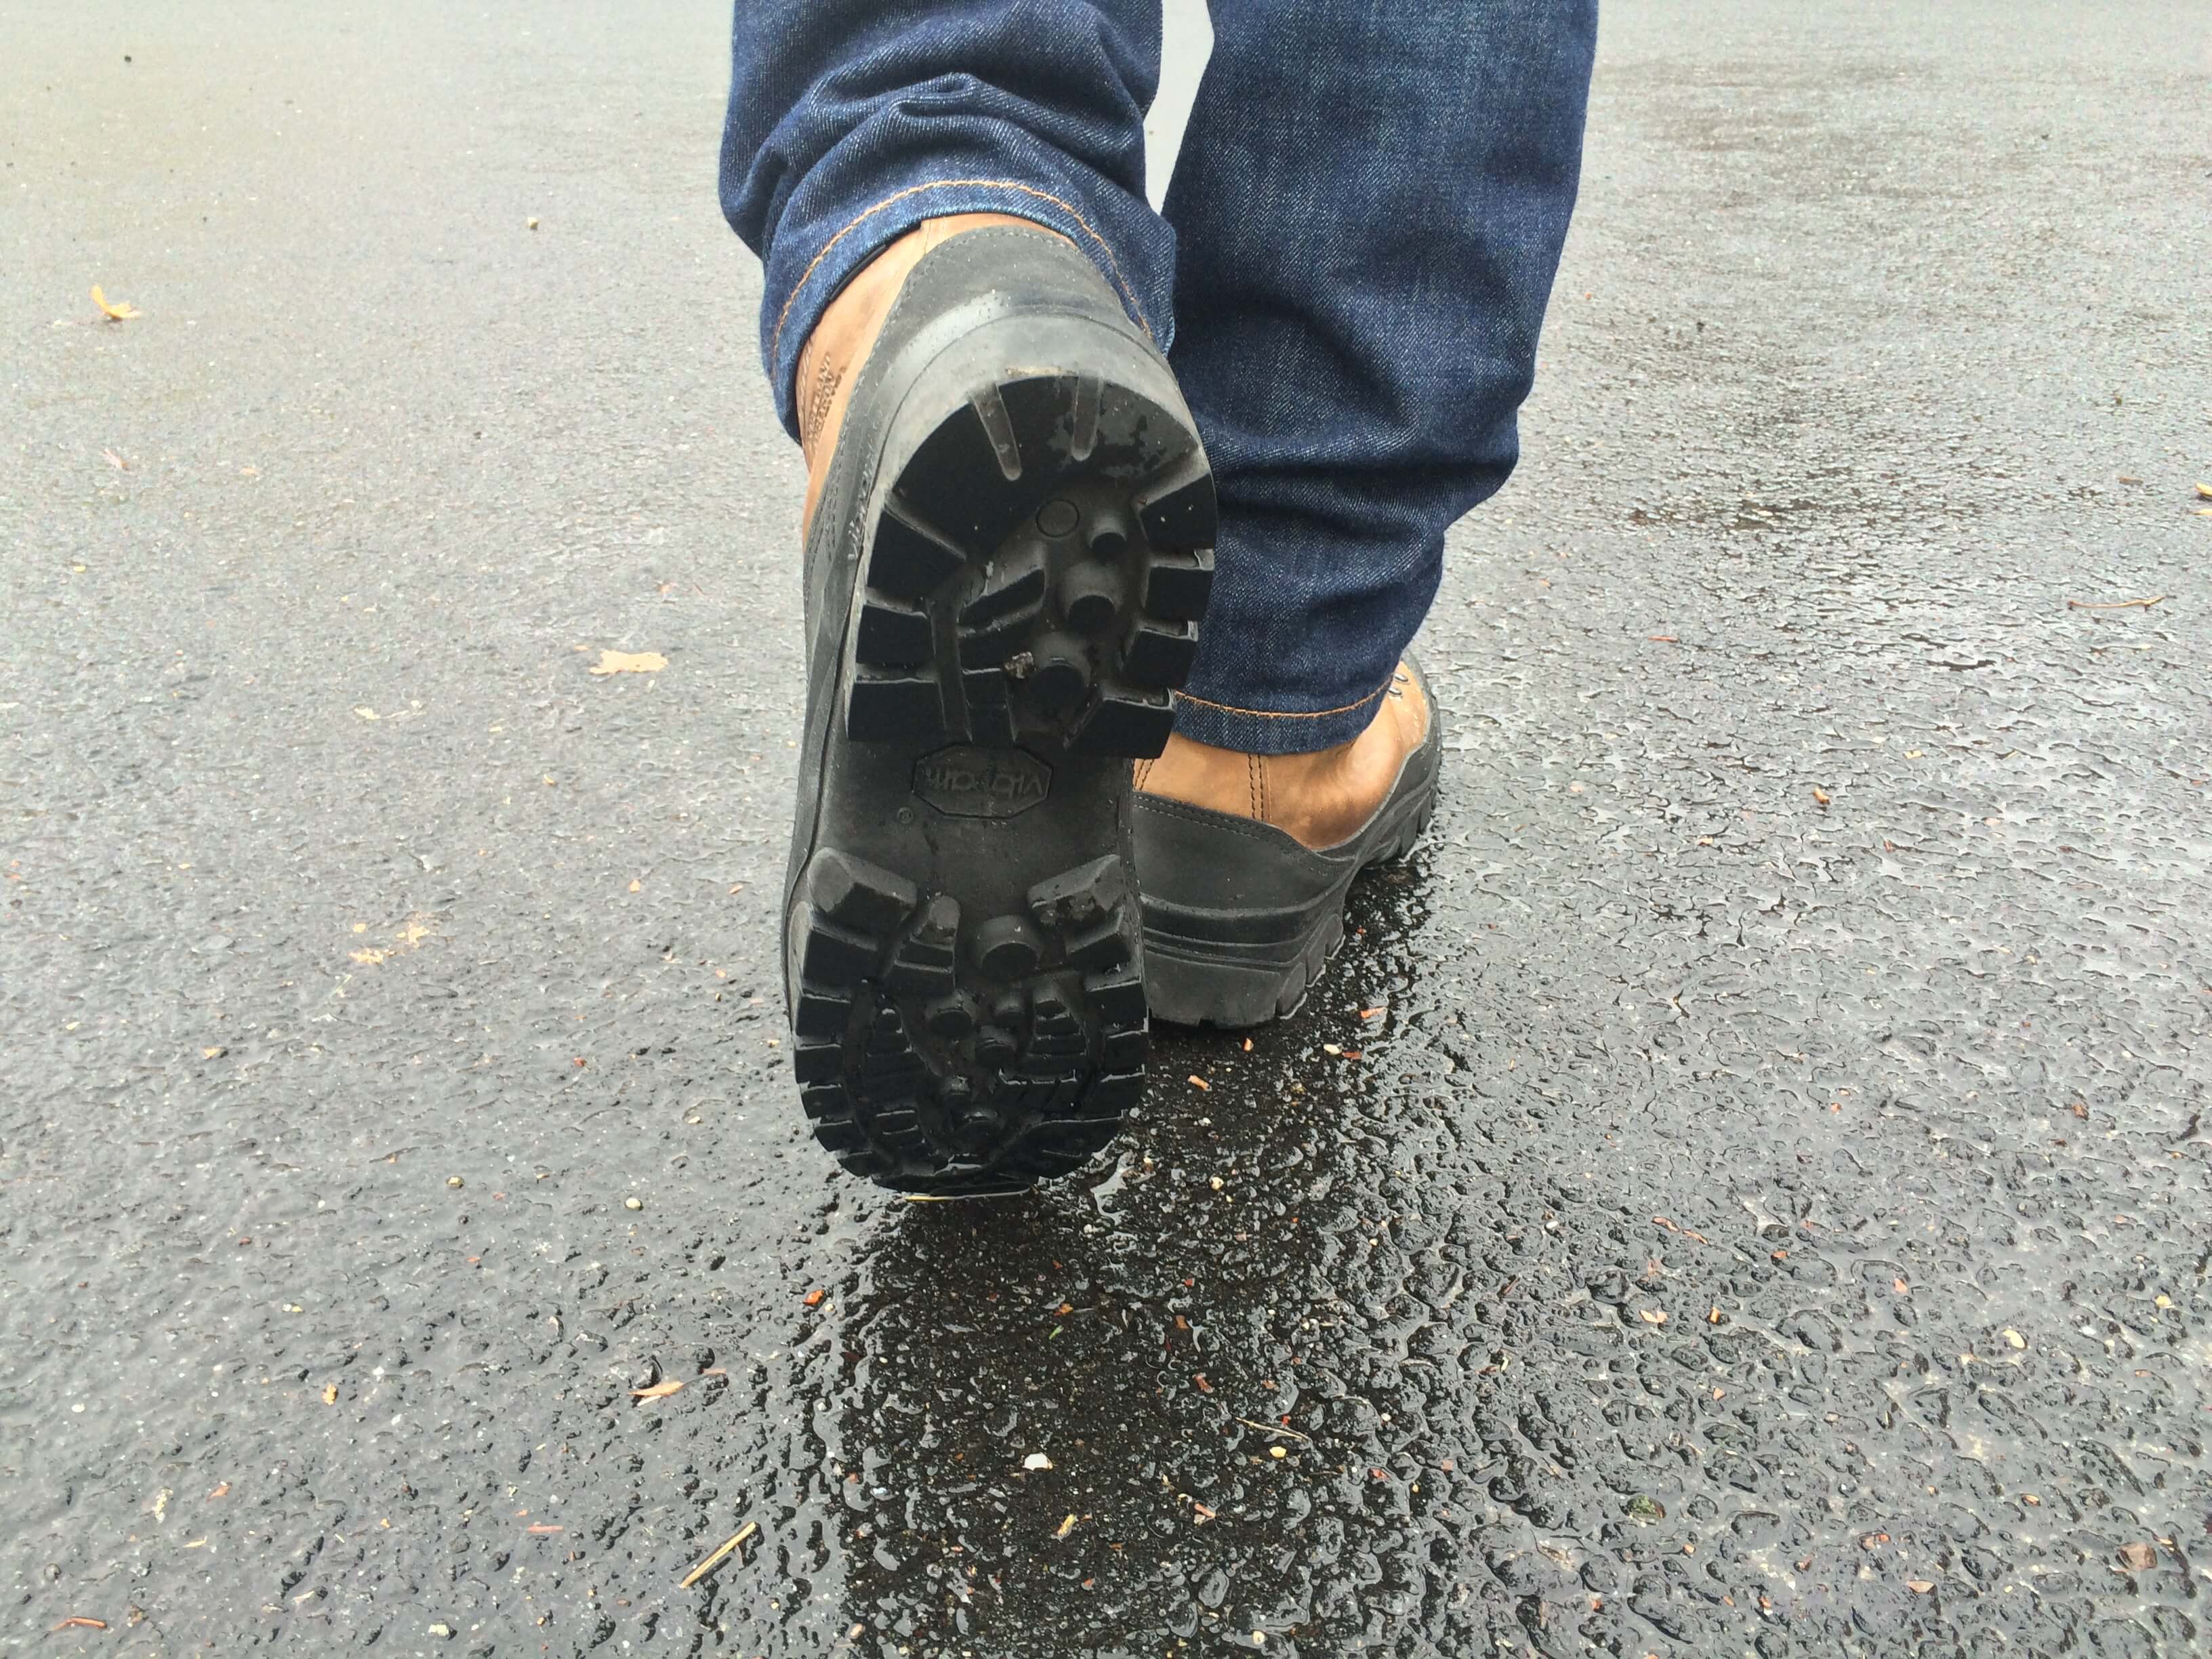 Soles have deep lugs and provide lots of traction, even on slippery surfaces